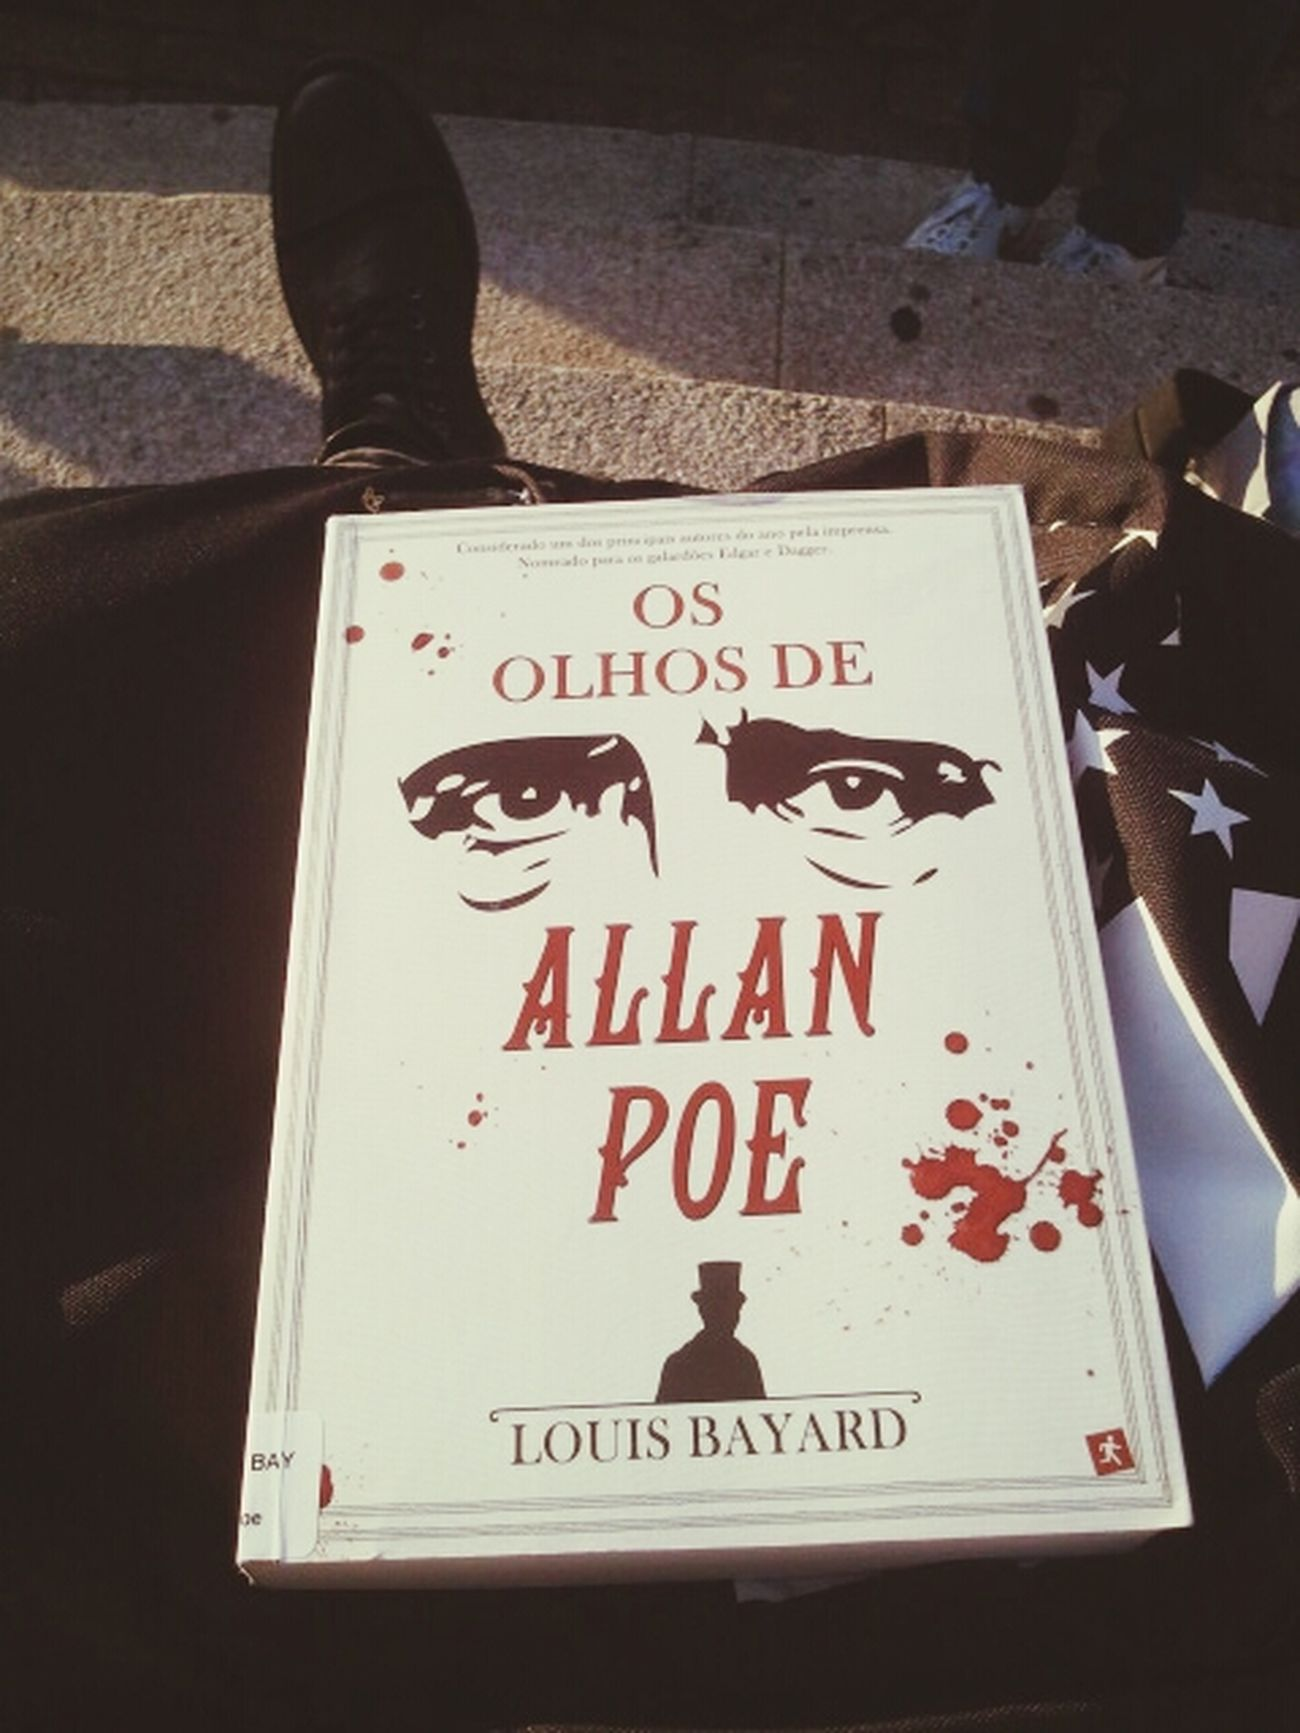 Edgar Allan Poe Books Reading Books Relaxing Booksandcoffee First Eyeem Photo